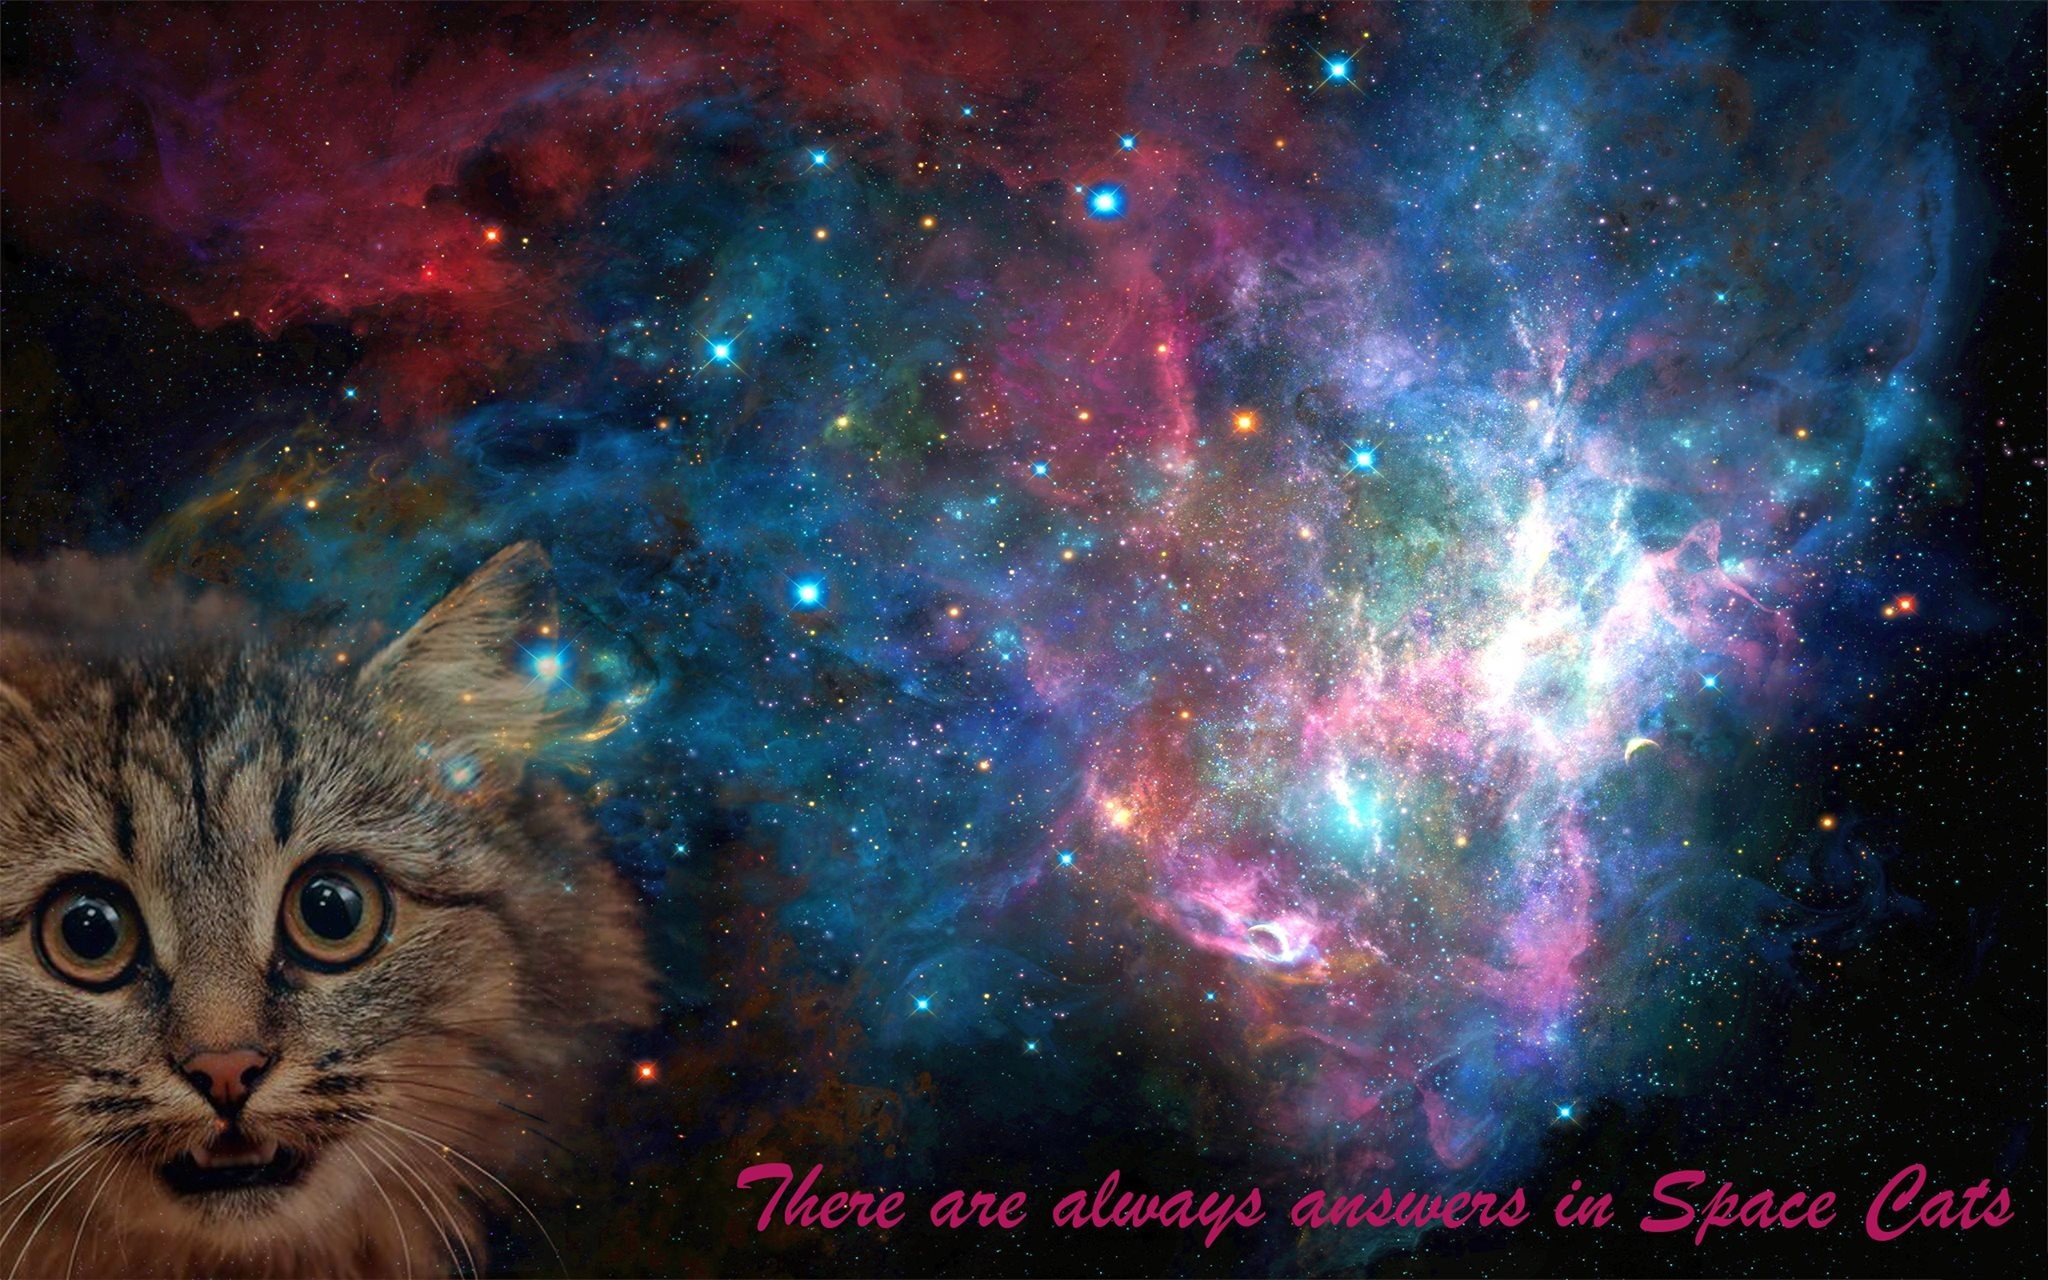 Galaxy Space Live Wallpapers Hd By Narendra Doriya: Space, Cat, Space Cat, Galaxy HD Wallpapers / Desktop And